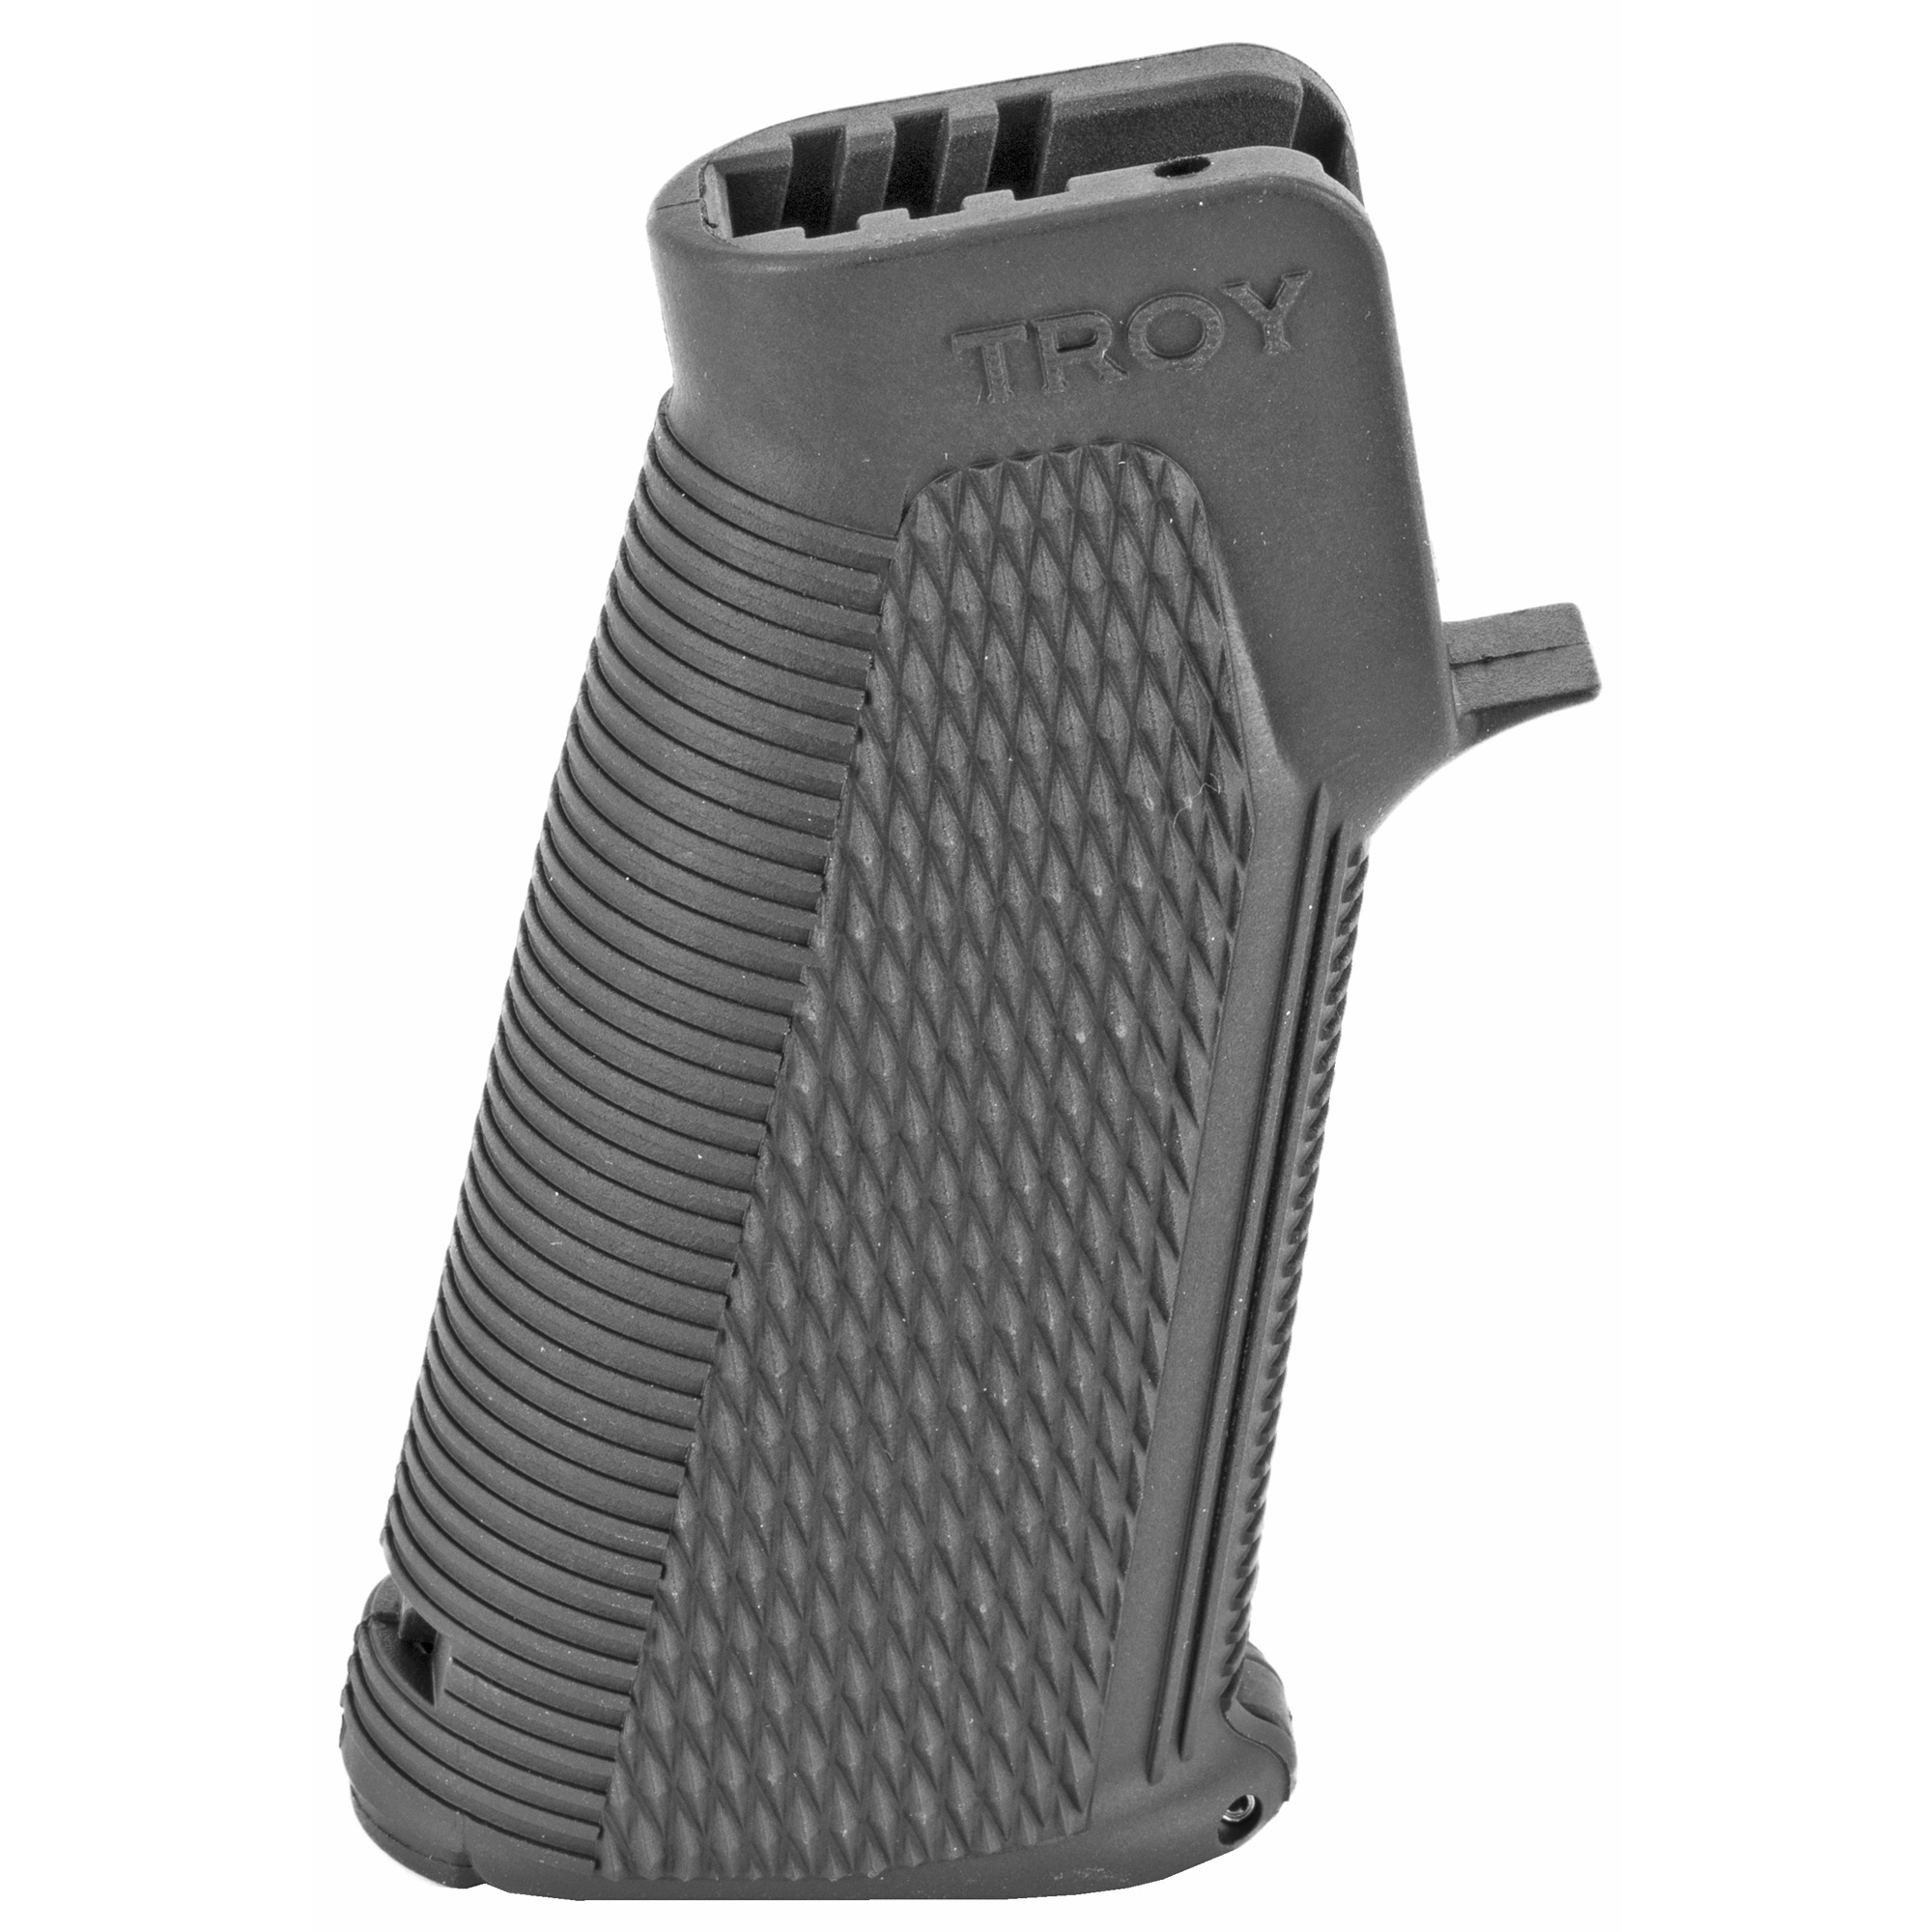 """Everything you want and need is in this ultimate grip. Featuring a refined grip angle"""" The Troy Control Grip sets your hand close to the receiver"""" leading your arm and shoulder into a proper shooting position. The aggressive scale pattern keeps the shooter's hand in place while the locking door creates a convenient storage compartment. Fitting all M4"""" M16/AR15 and FN SCAR rifles with the superior strength of rugged military-grade polymer"""" the Troy Control Grip is the perfect solution for Close Quarters Battle."""